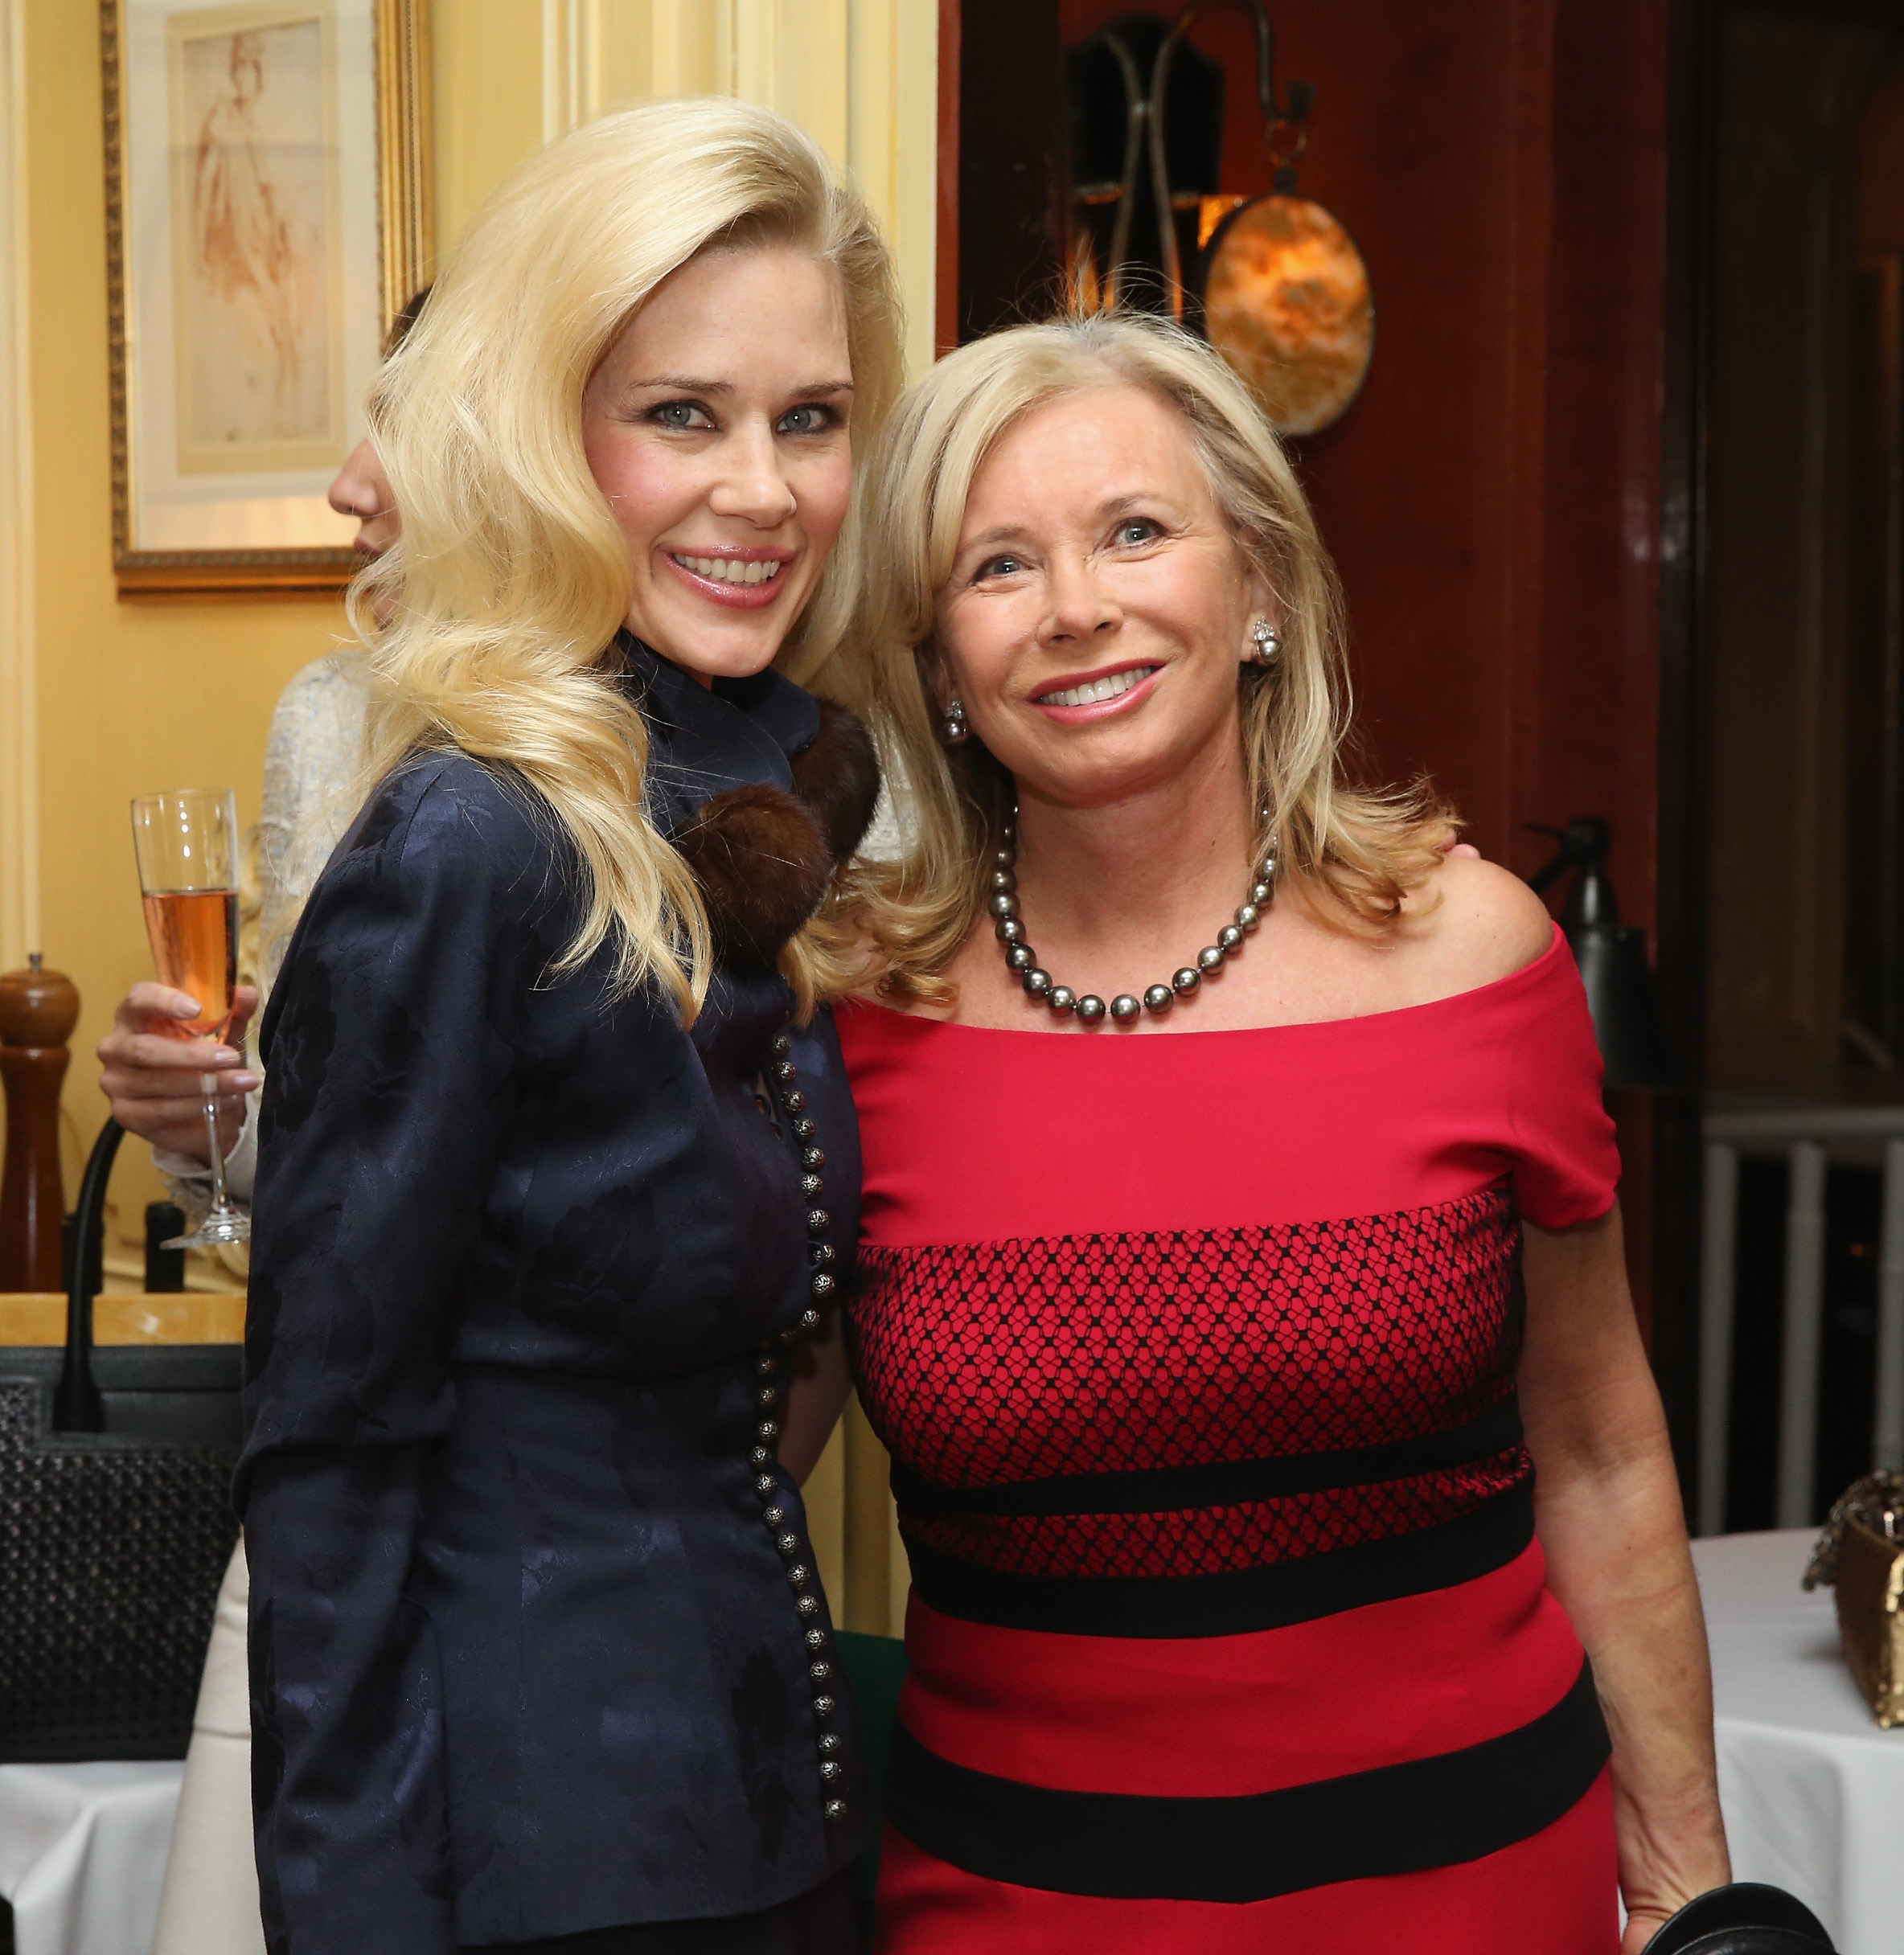 NEW YORK, NY - JANUARY 08: New York Socialite Michelle-Marie Heinemann (L) and Sharon Bush attend a Luncheon For Prince Charles Henri Lobkowicz At Plaza Athenee on January 8, 2016 in New York City. (Photo by Robin Marchant/Getty Images for Old Fashioned Mom Magazine)